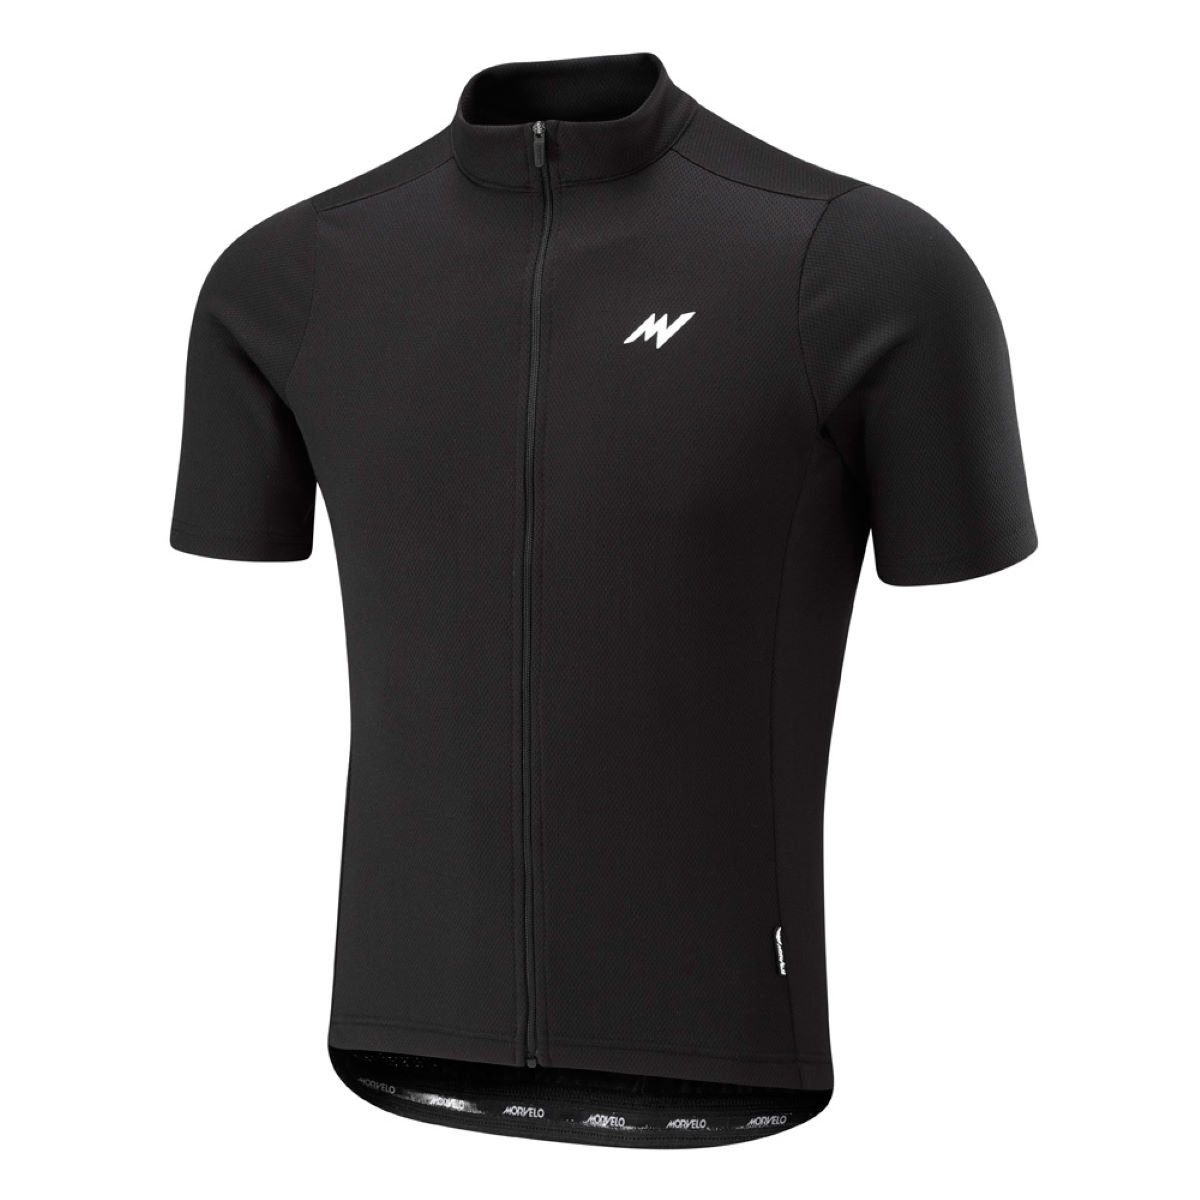 Maillot Morvelo Stealth (manches courtes) - S Stealth